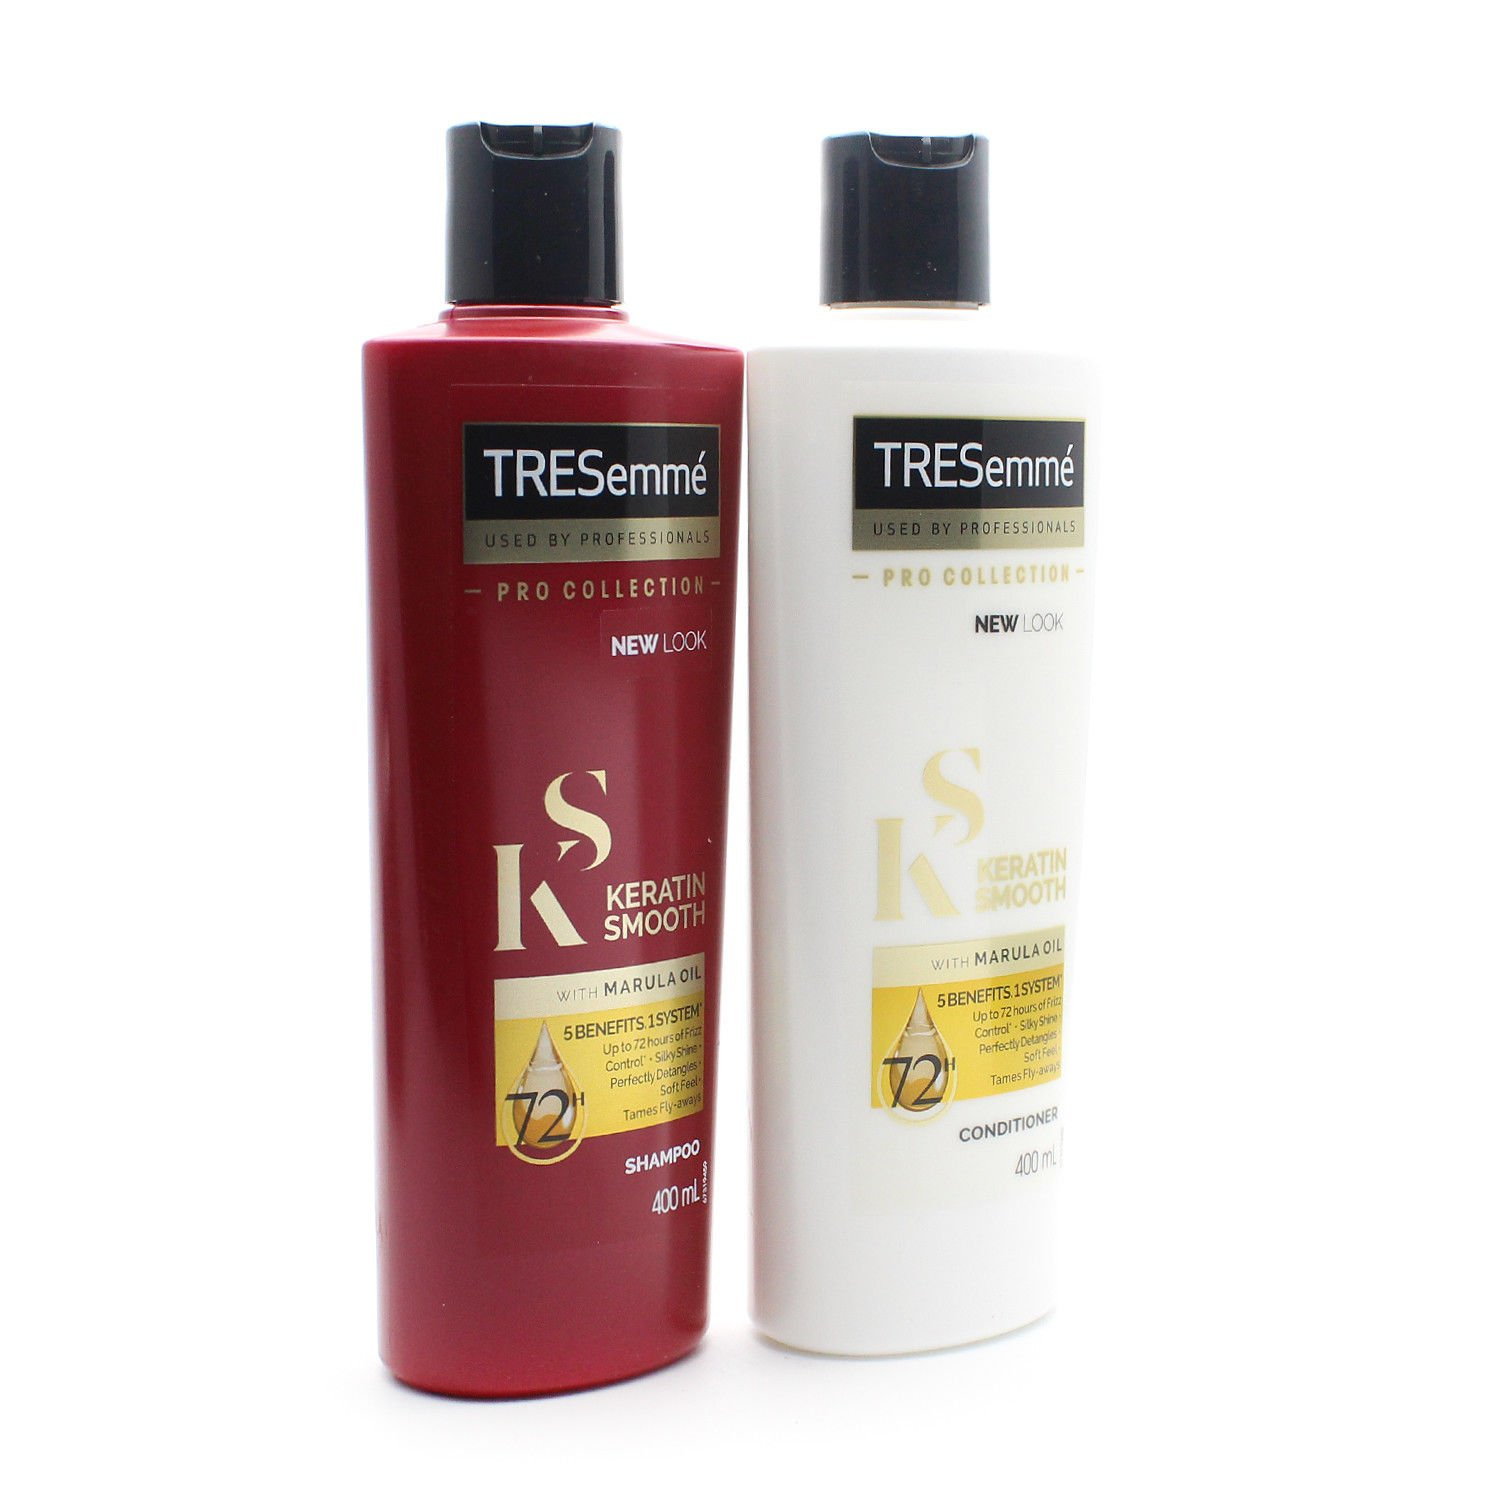 Tresemme Keratin Smooth Pro Collection Shampoo and Conditioner Set 2 x 400ml Unilever